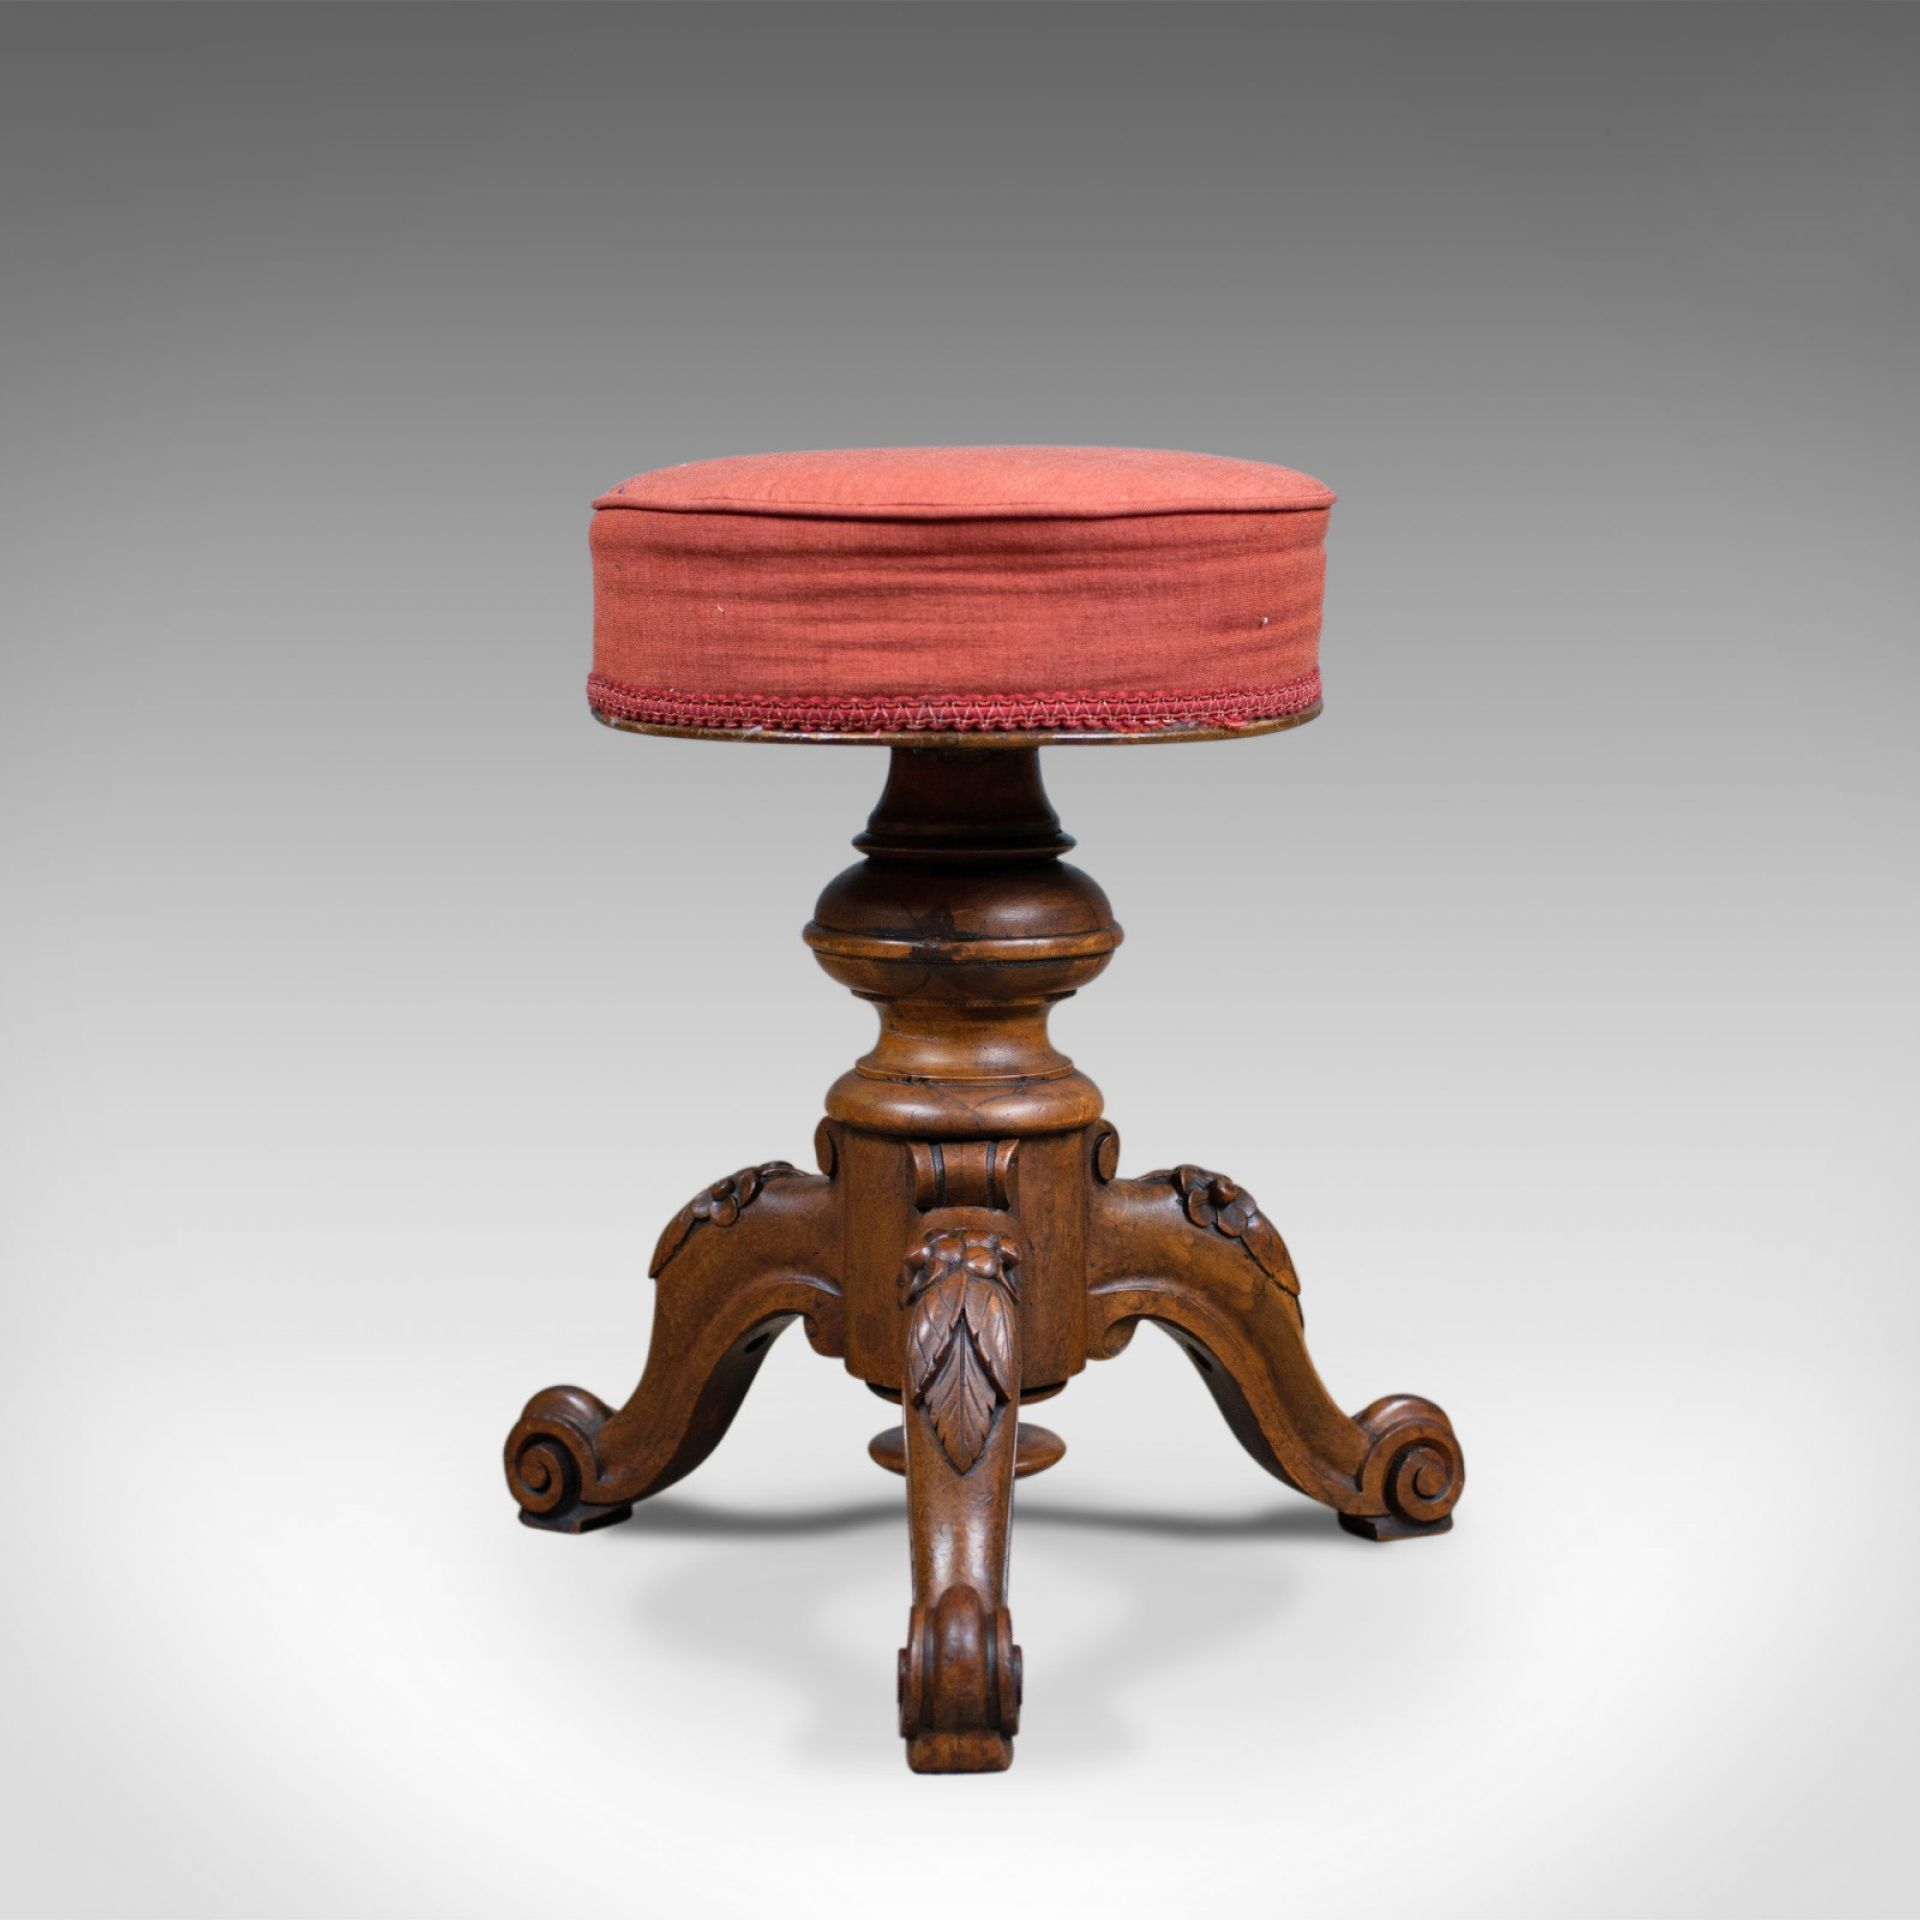 Antique Piano Stool, Walnut, Adjustable, English, Victorian, Seat Circa 1860